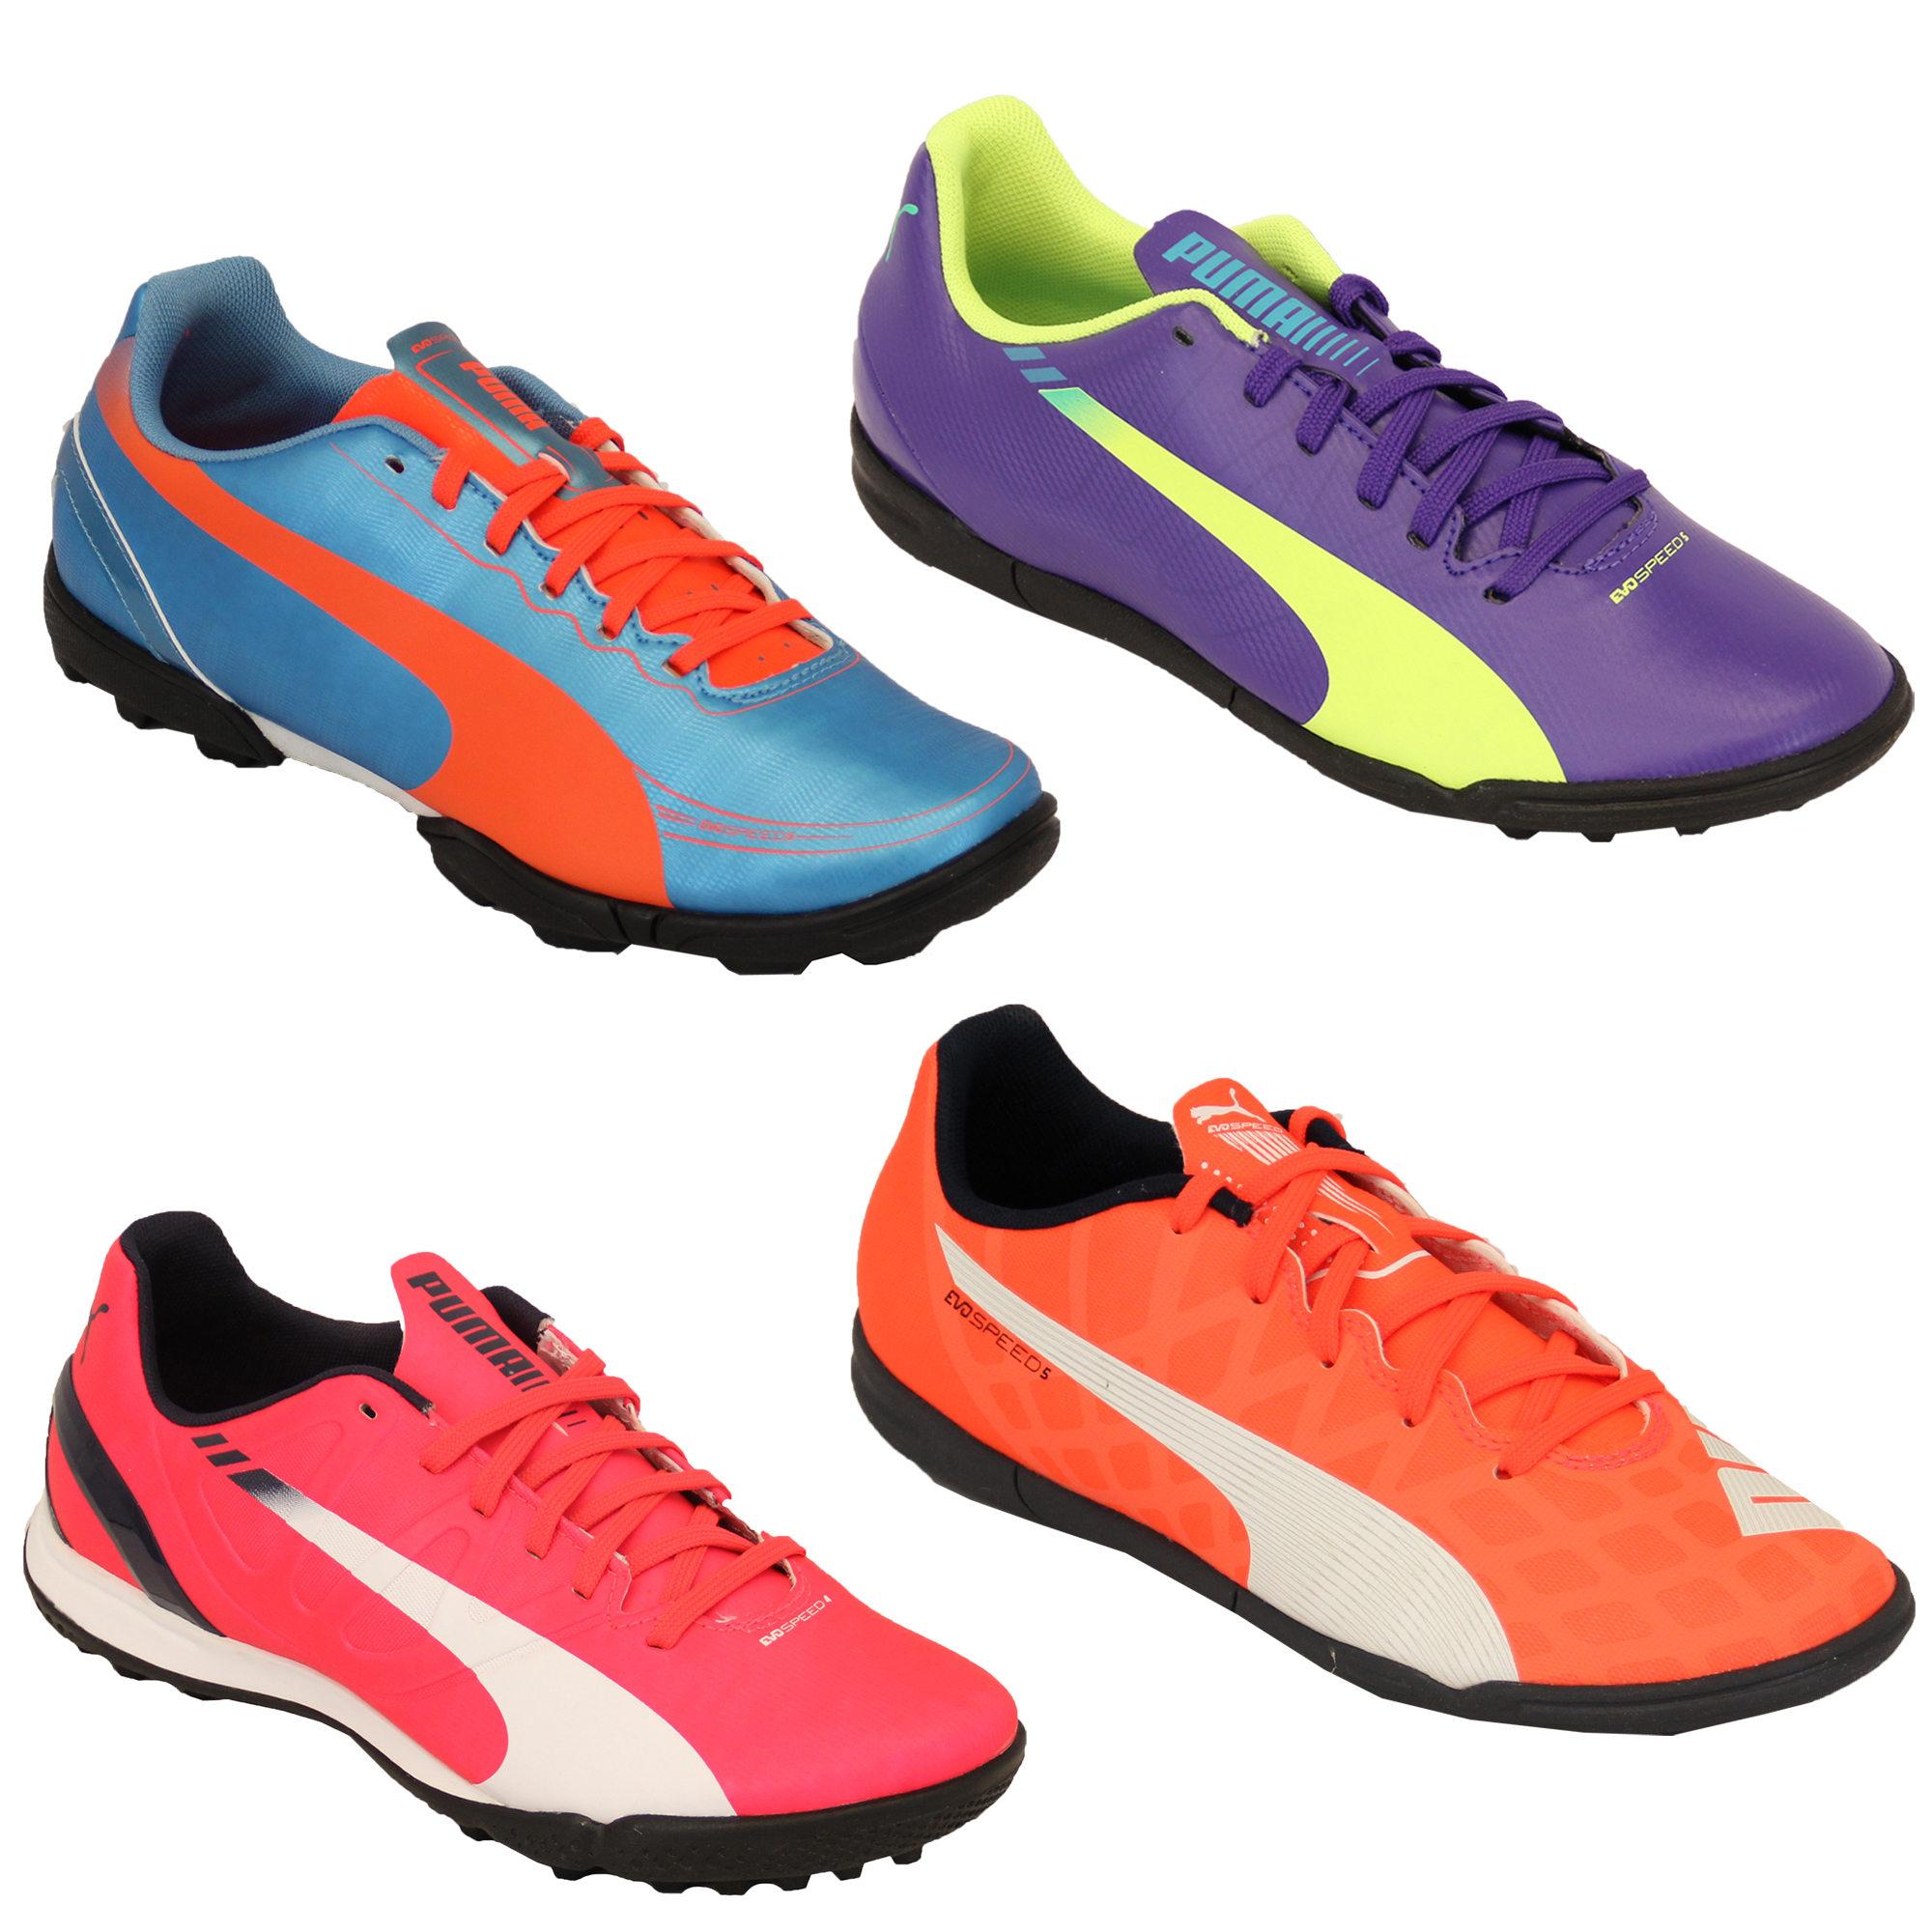 Kids Astro Turf Shoes